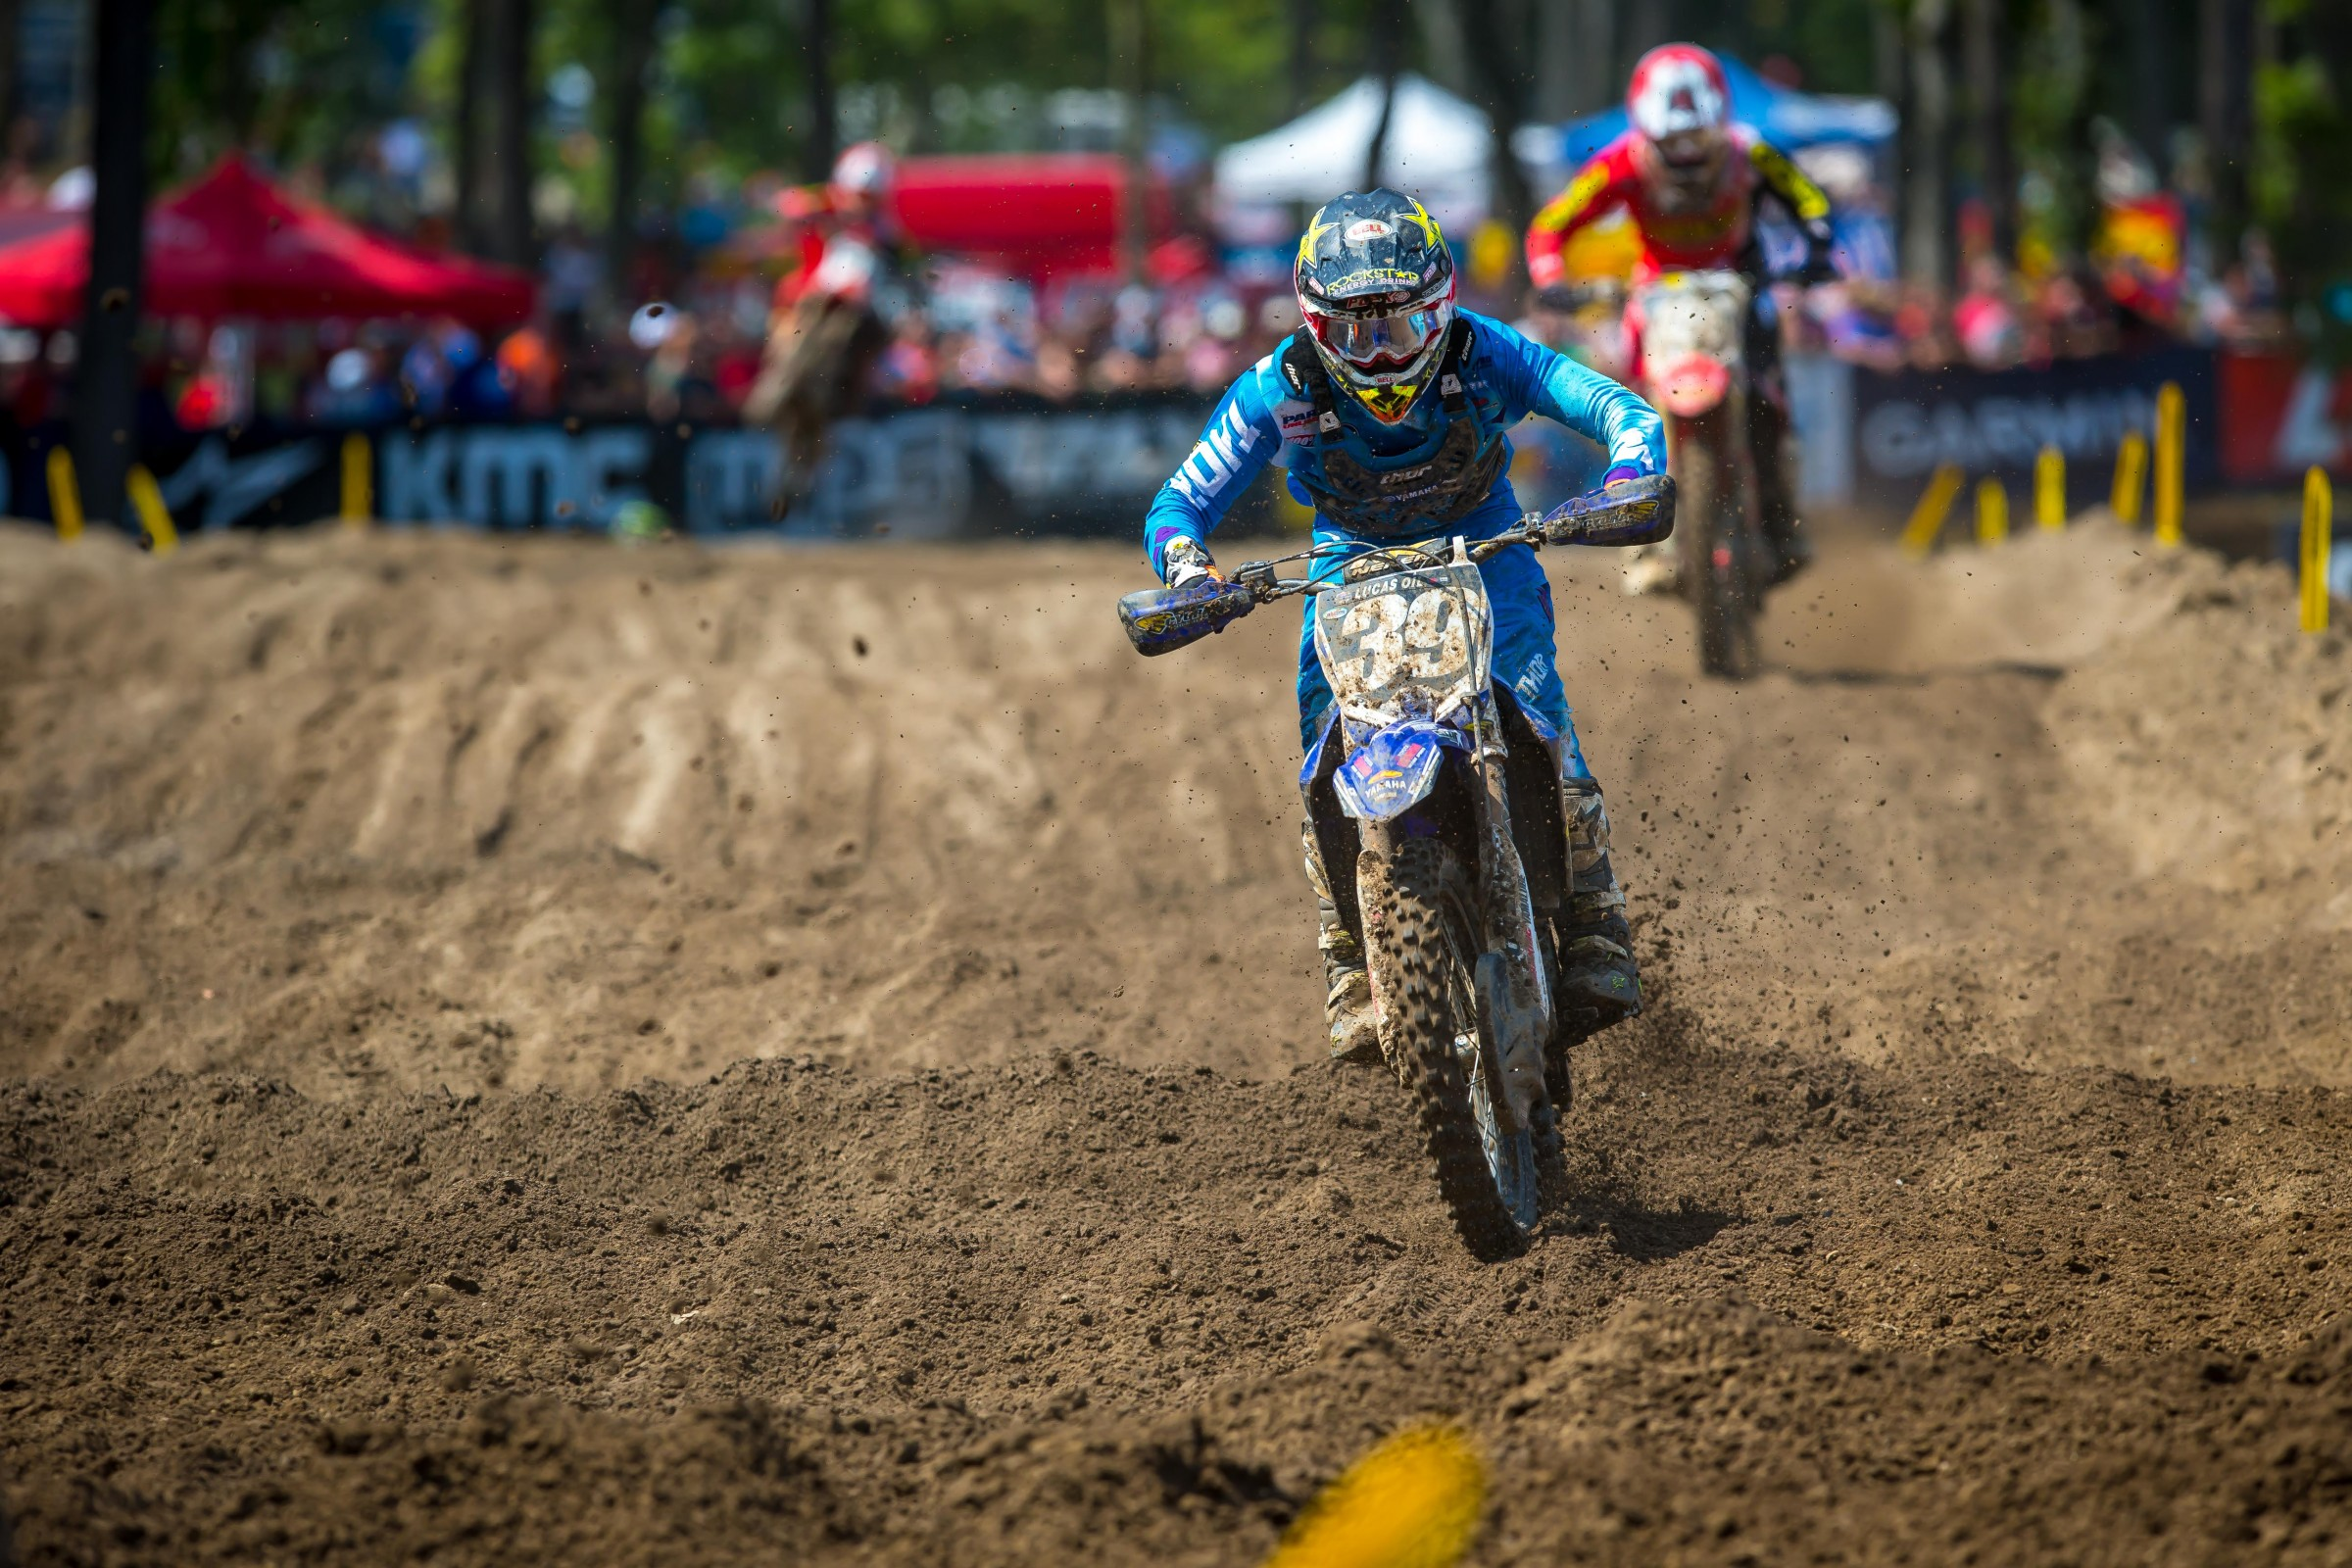 Nichols captured his first Lucas Oil Pro Motocross overall podium with 3-4 moto scores.